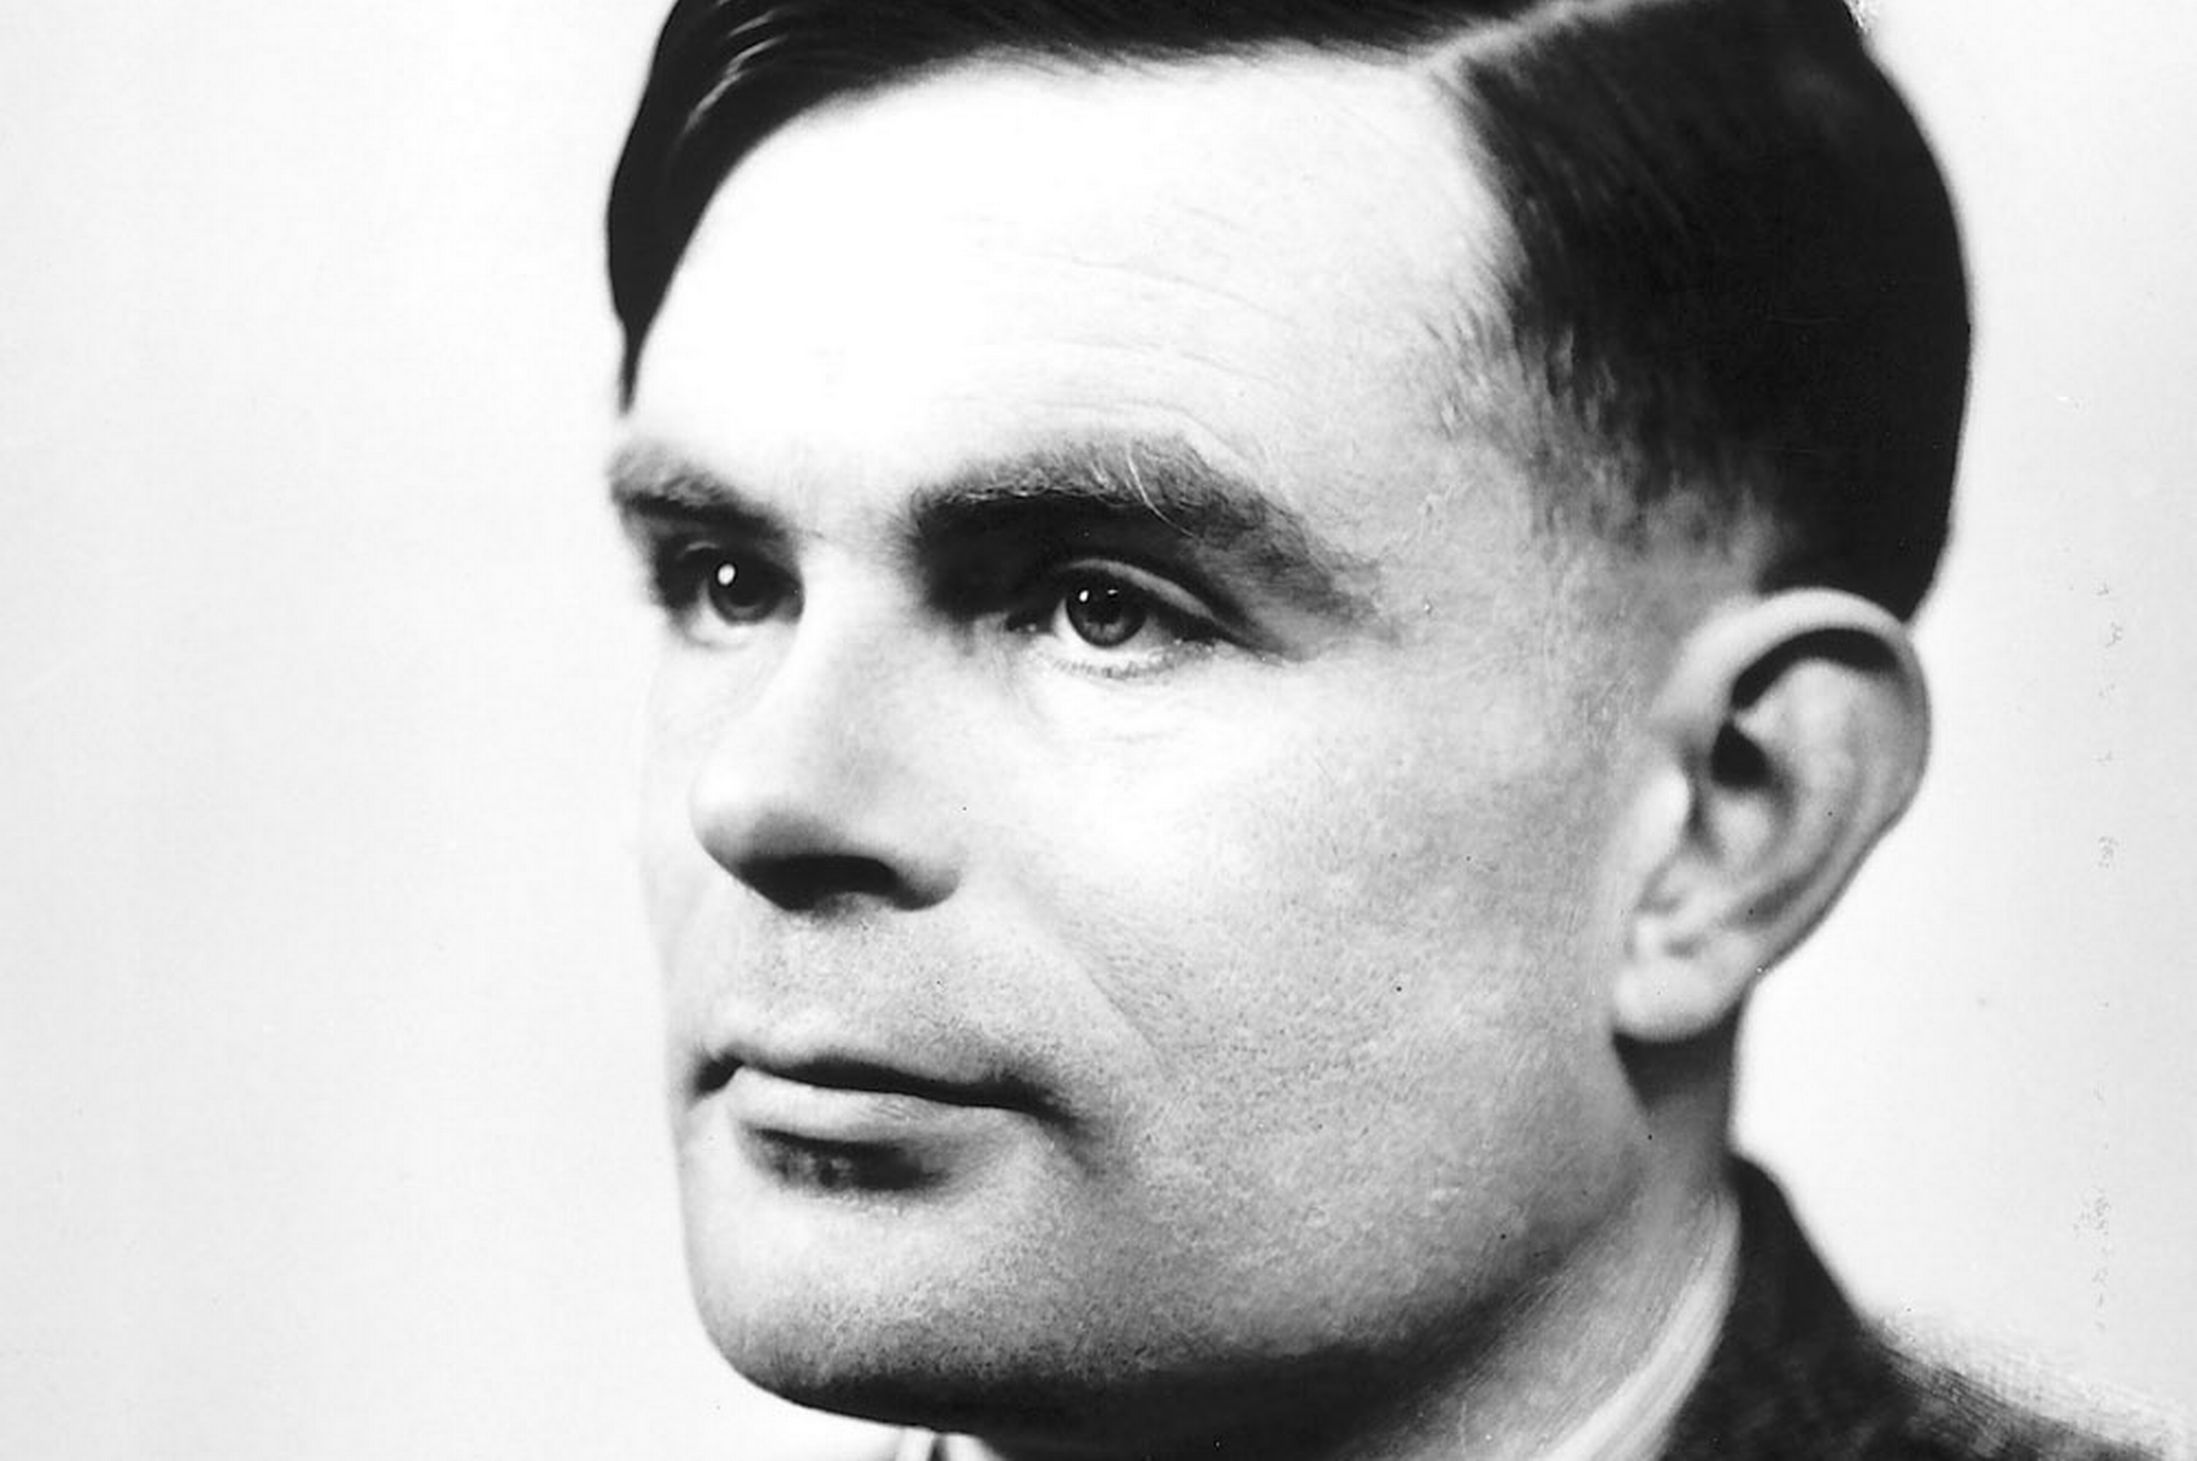 Dr Alan Turing, the inventor of the computing machine. Every year, a test named after him is held to determine the best AI from around the world.